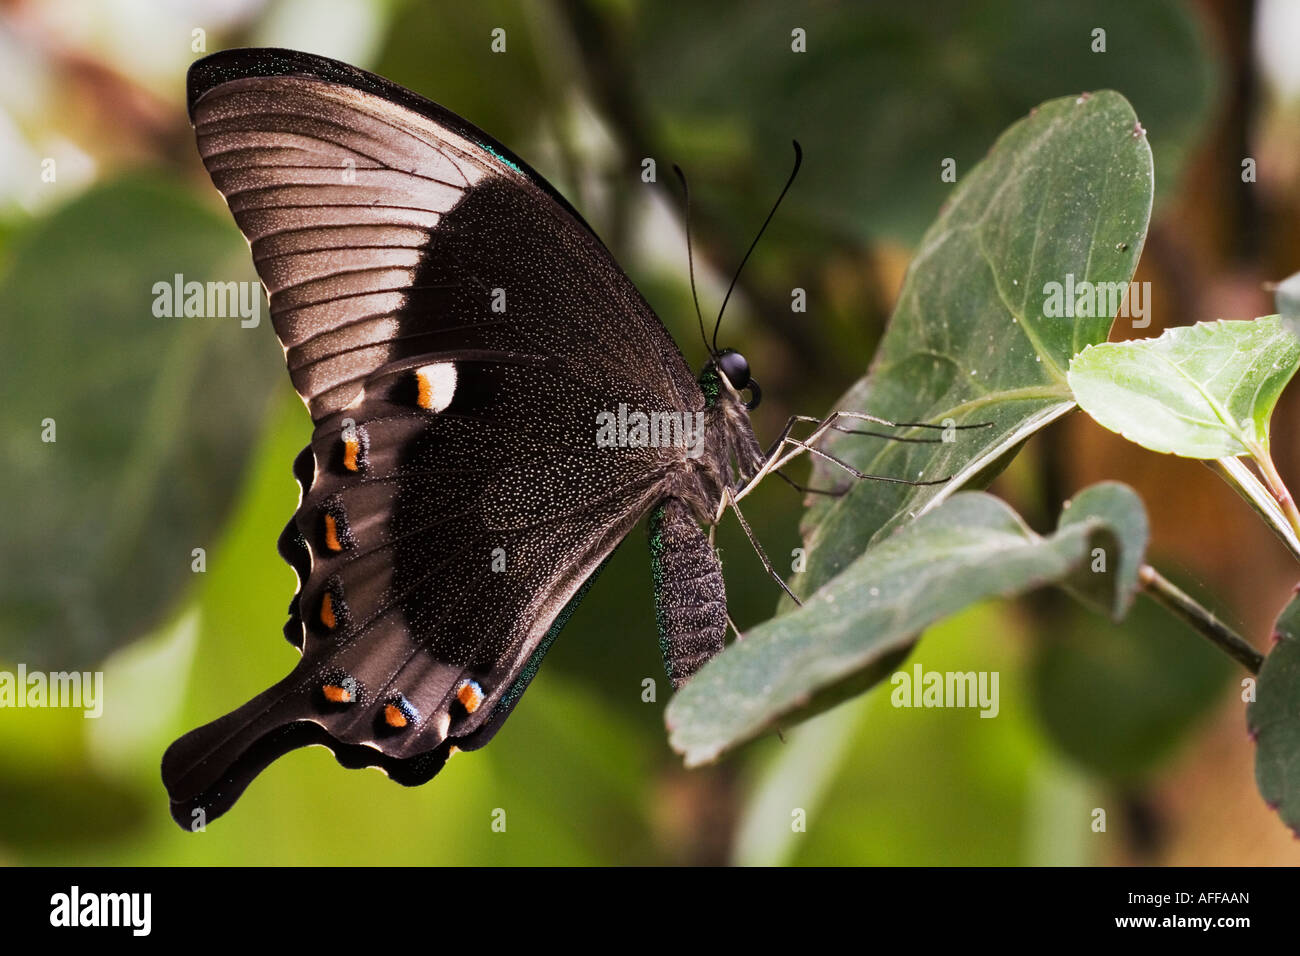 Green Banded Peacock Butterfly (Papilio palinurus) resting on leaf - Stock Image